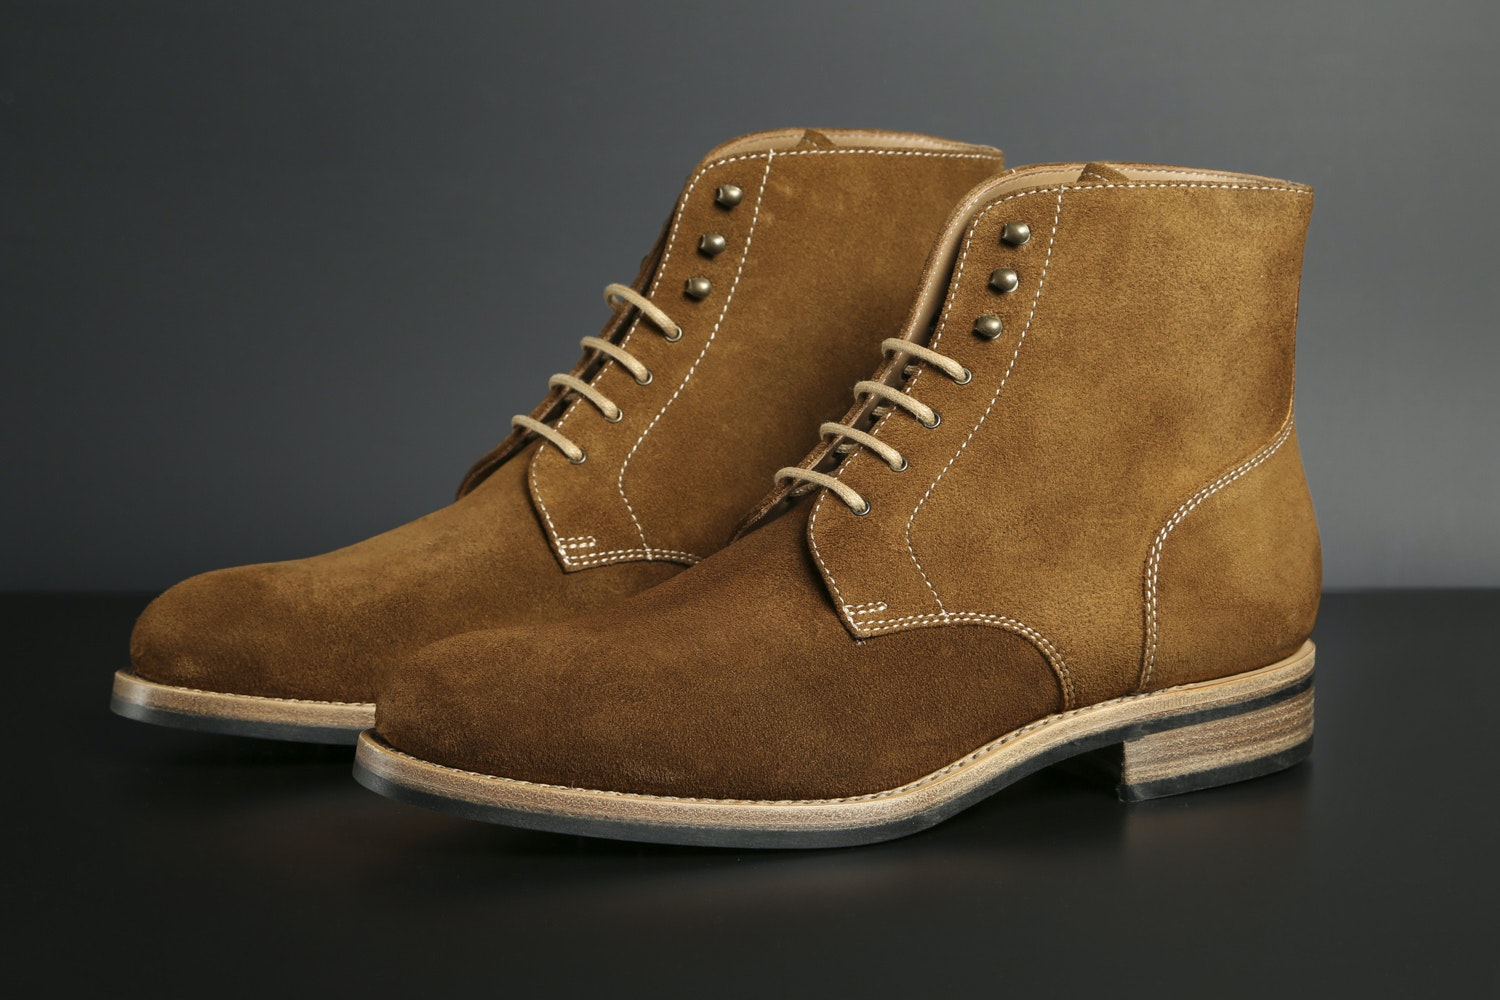 Snuff Suede / Sestriere Sole